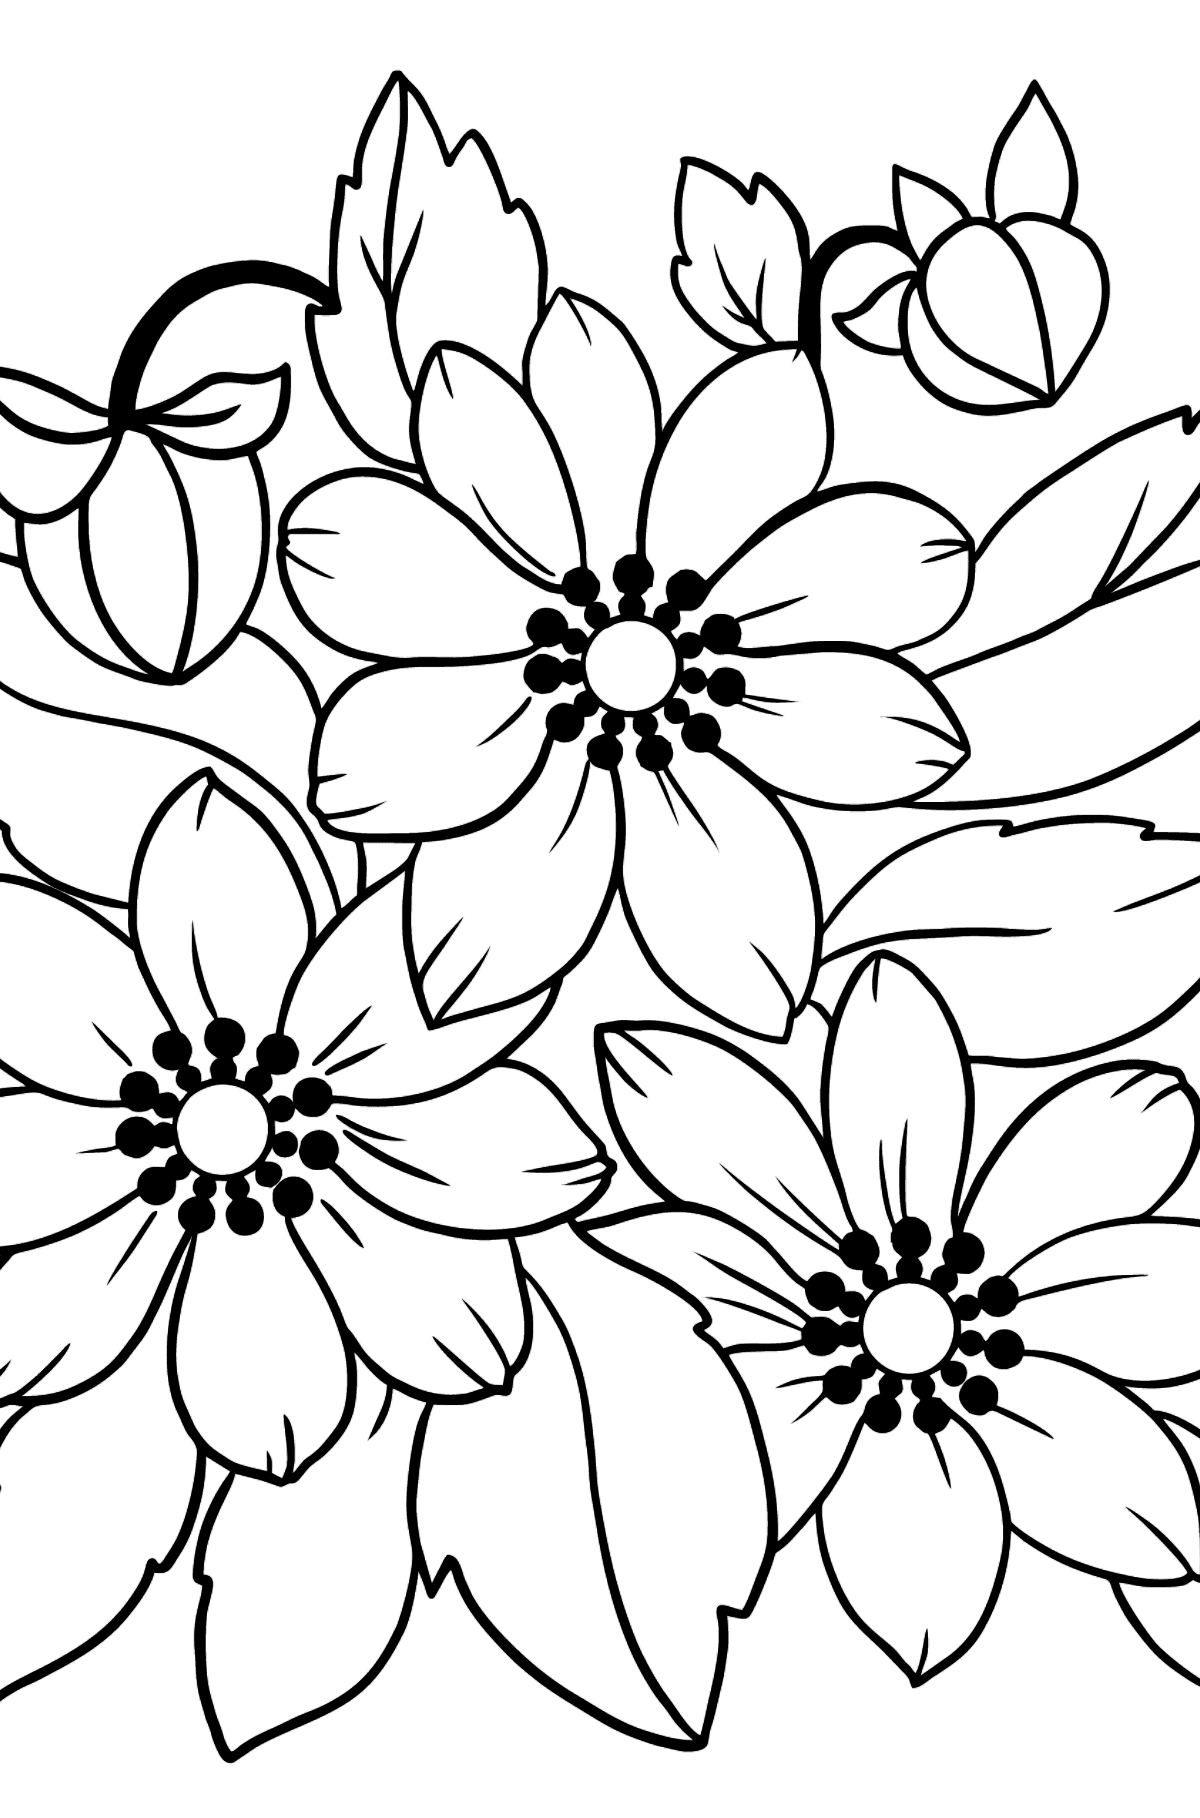 Flower Coloring Page - An Orange and Yellow Anemone - Coloring Pages for Kids